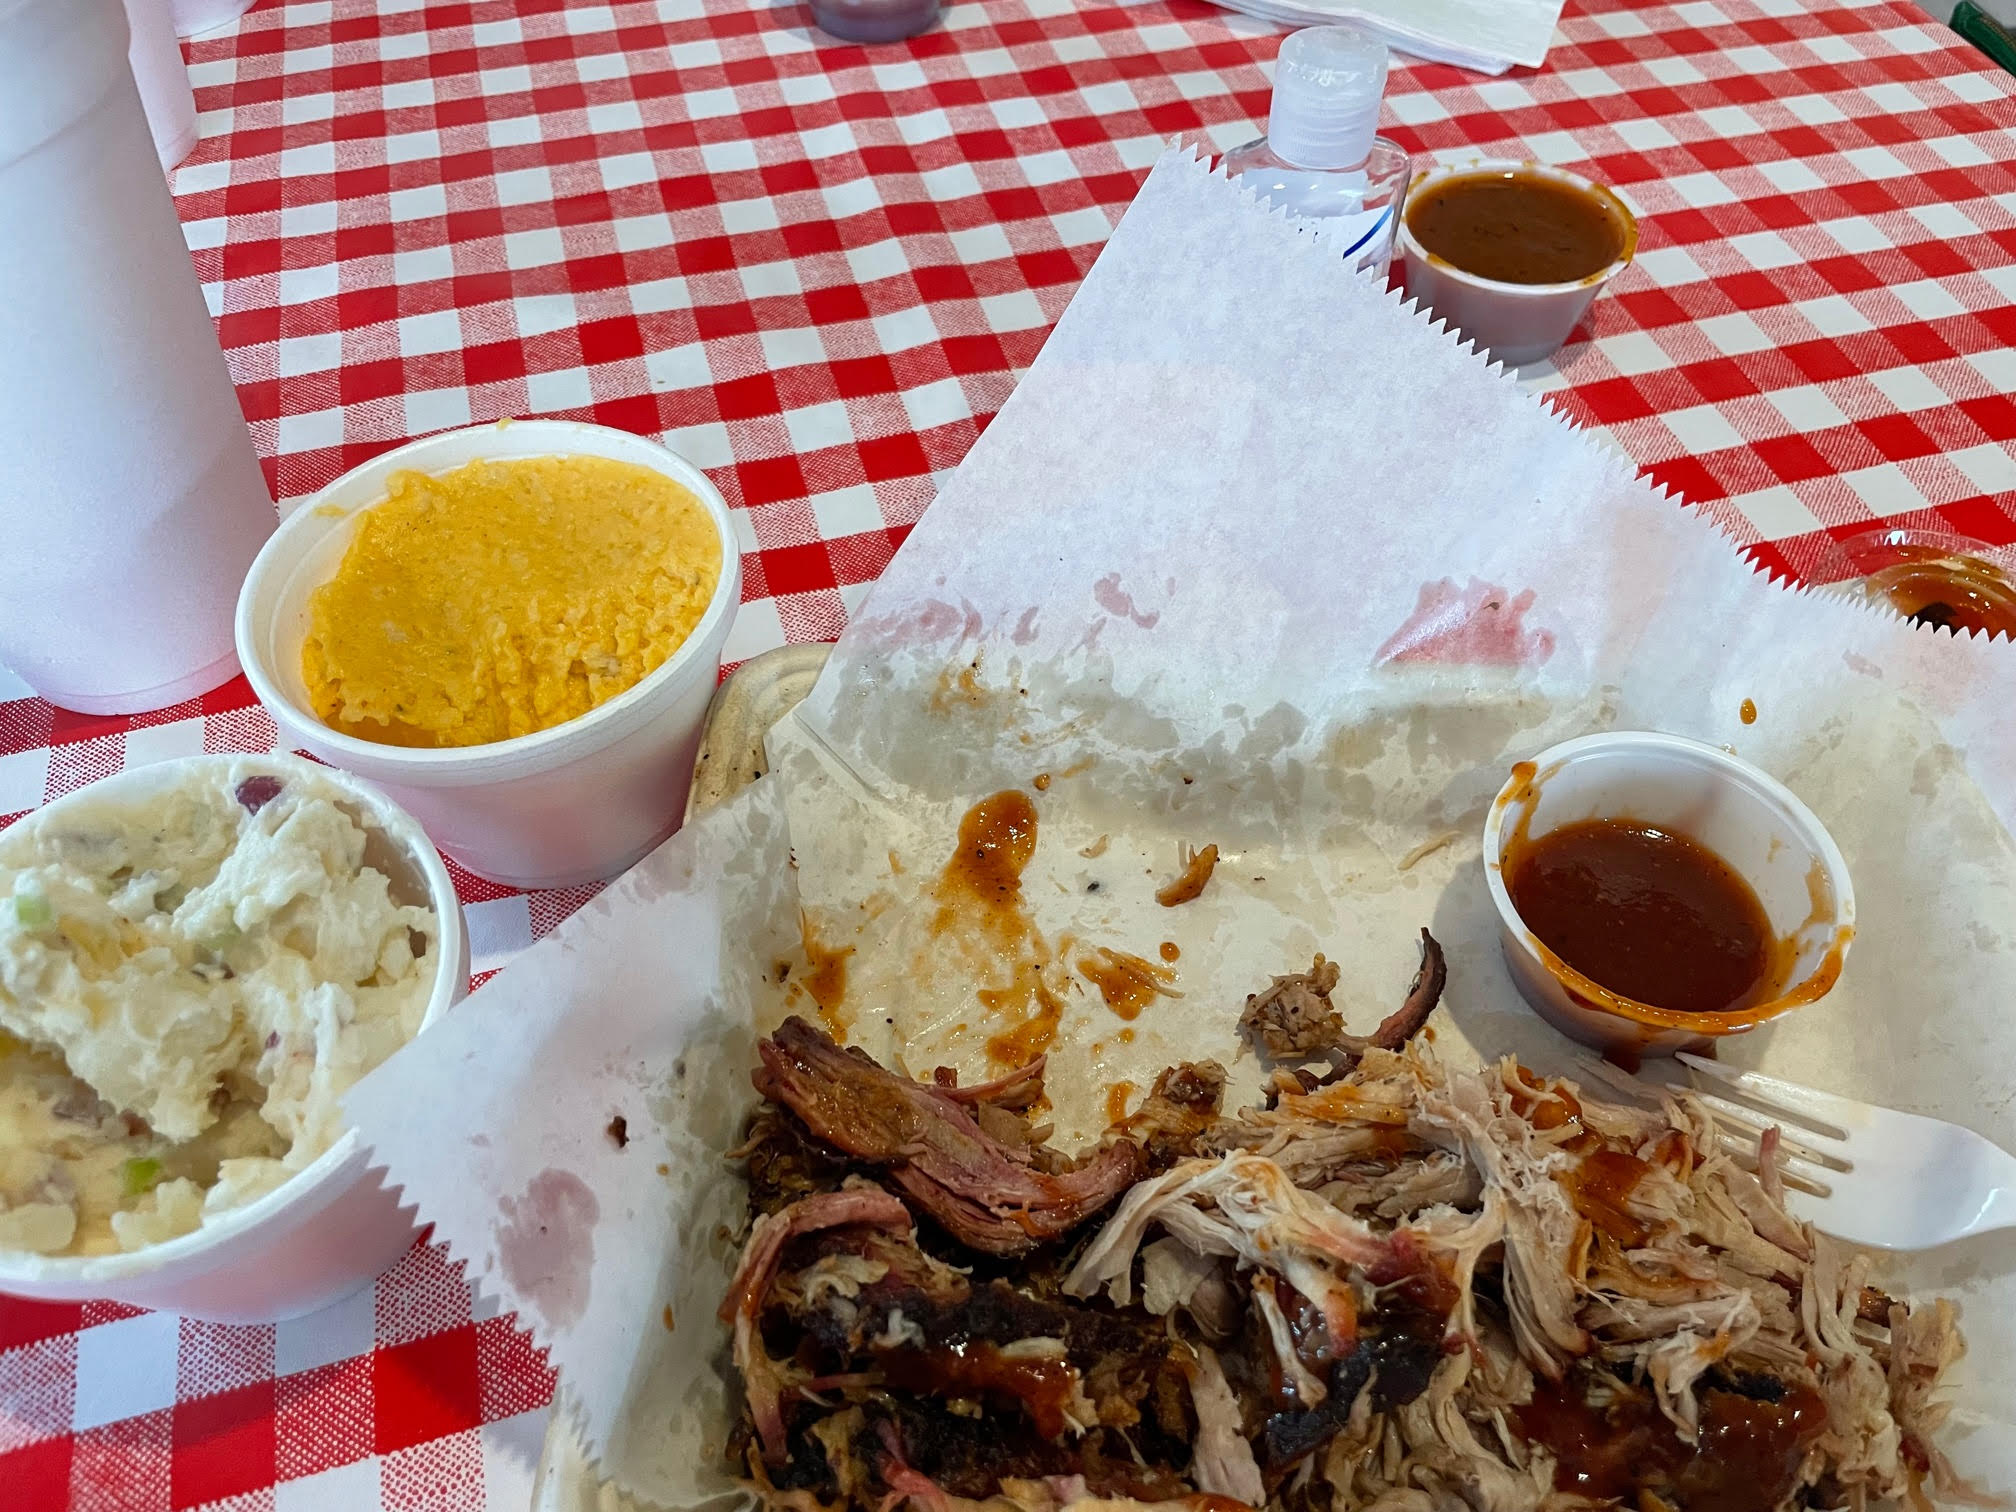 BBQ pulled pork lunch at Red State BBQ in Lexington KY near the KY Horse Park by Kim Soper Realtor